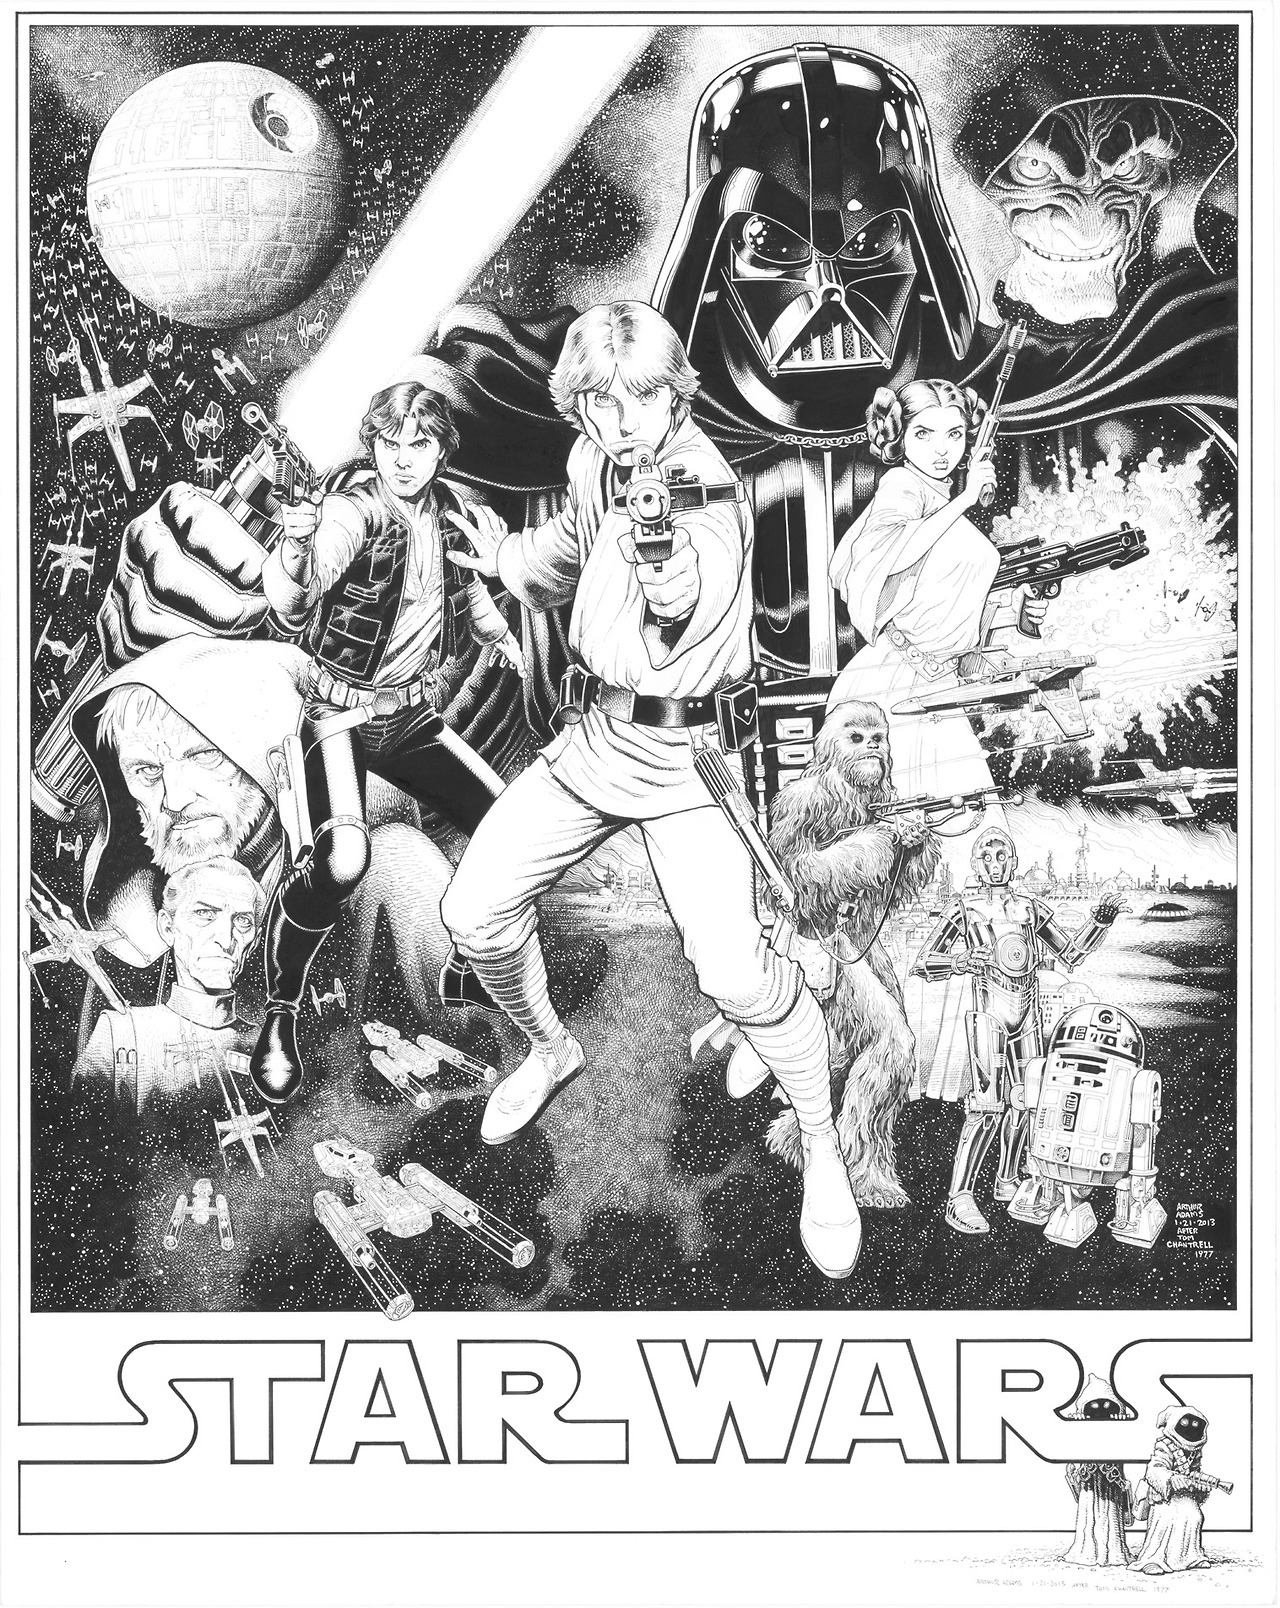 Art Adams draws an awesome Star Wars visual. [via Brian Michael Bendis]